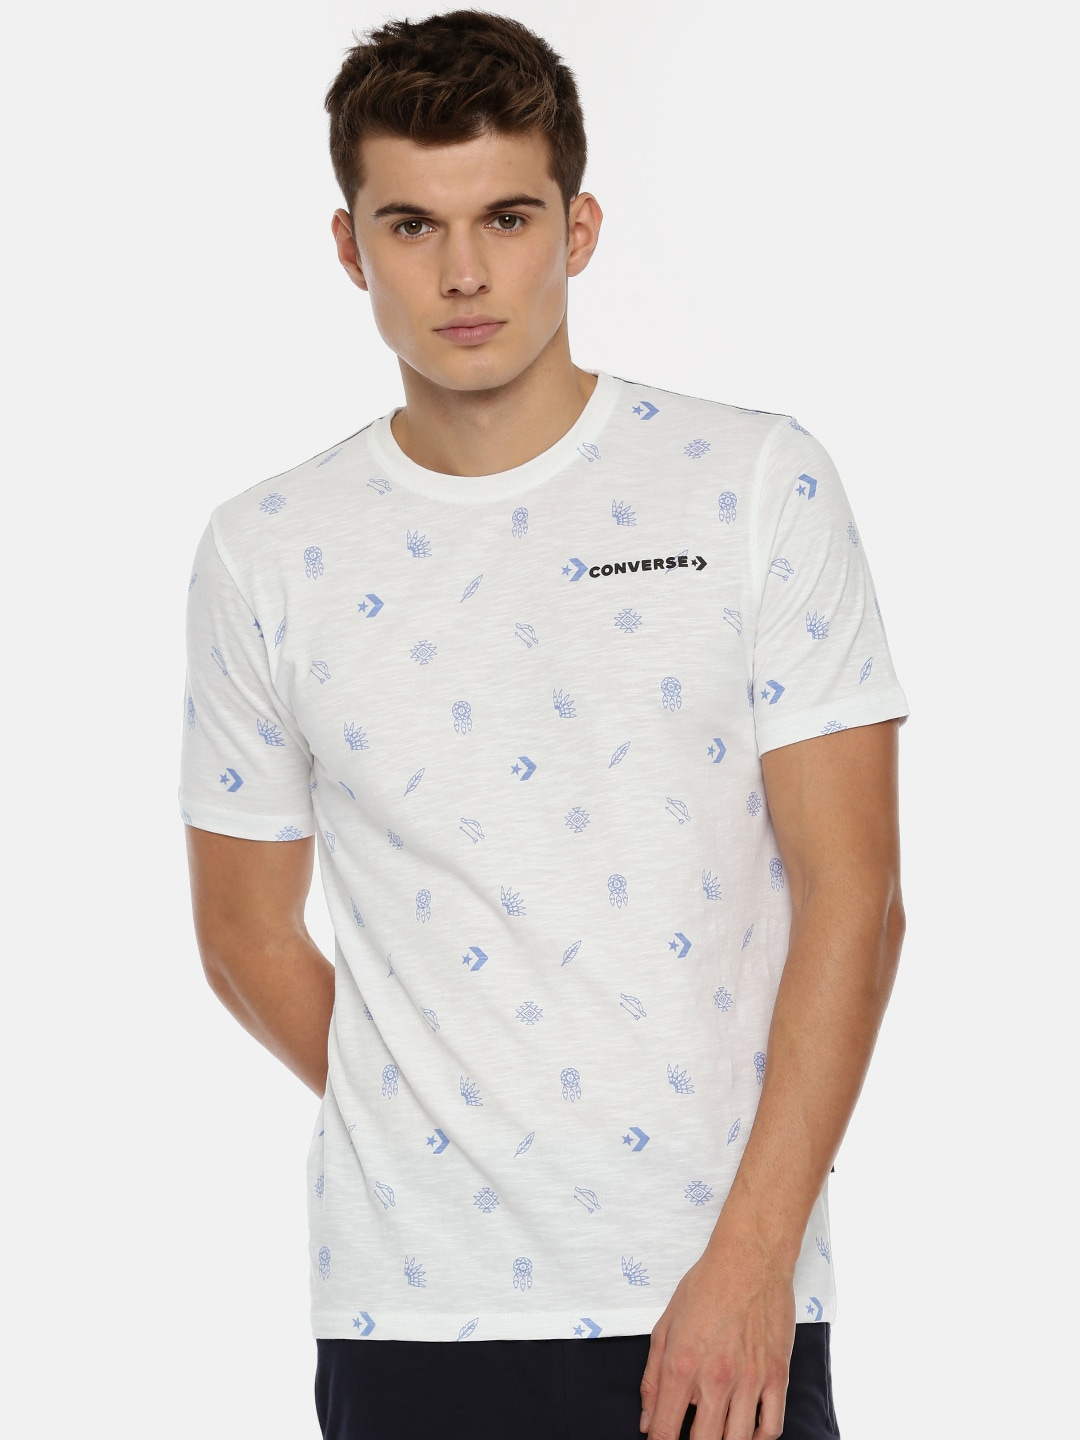 d91d97f08d12 Converse Polo Tshirts - Buy Converse Polo Tshirts online in India